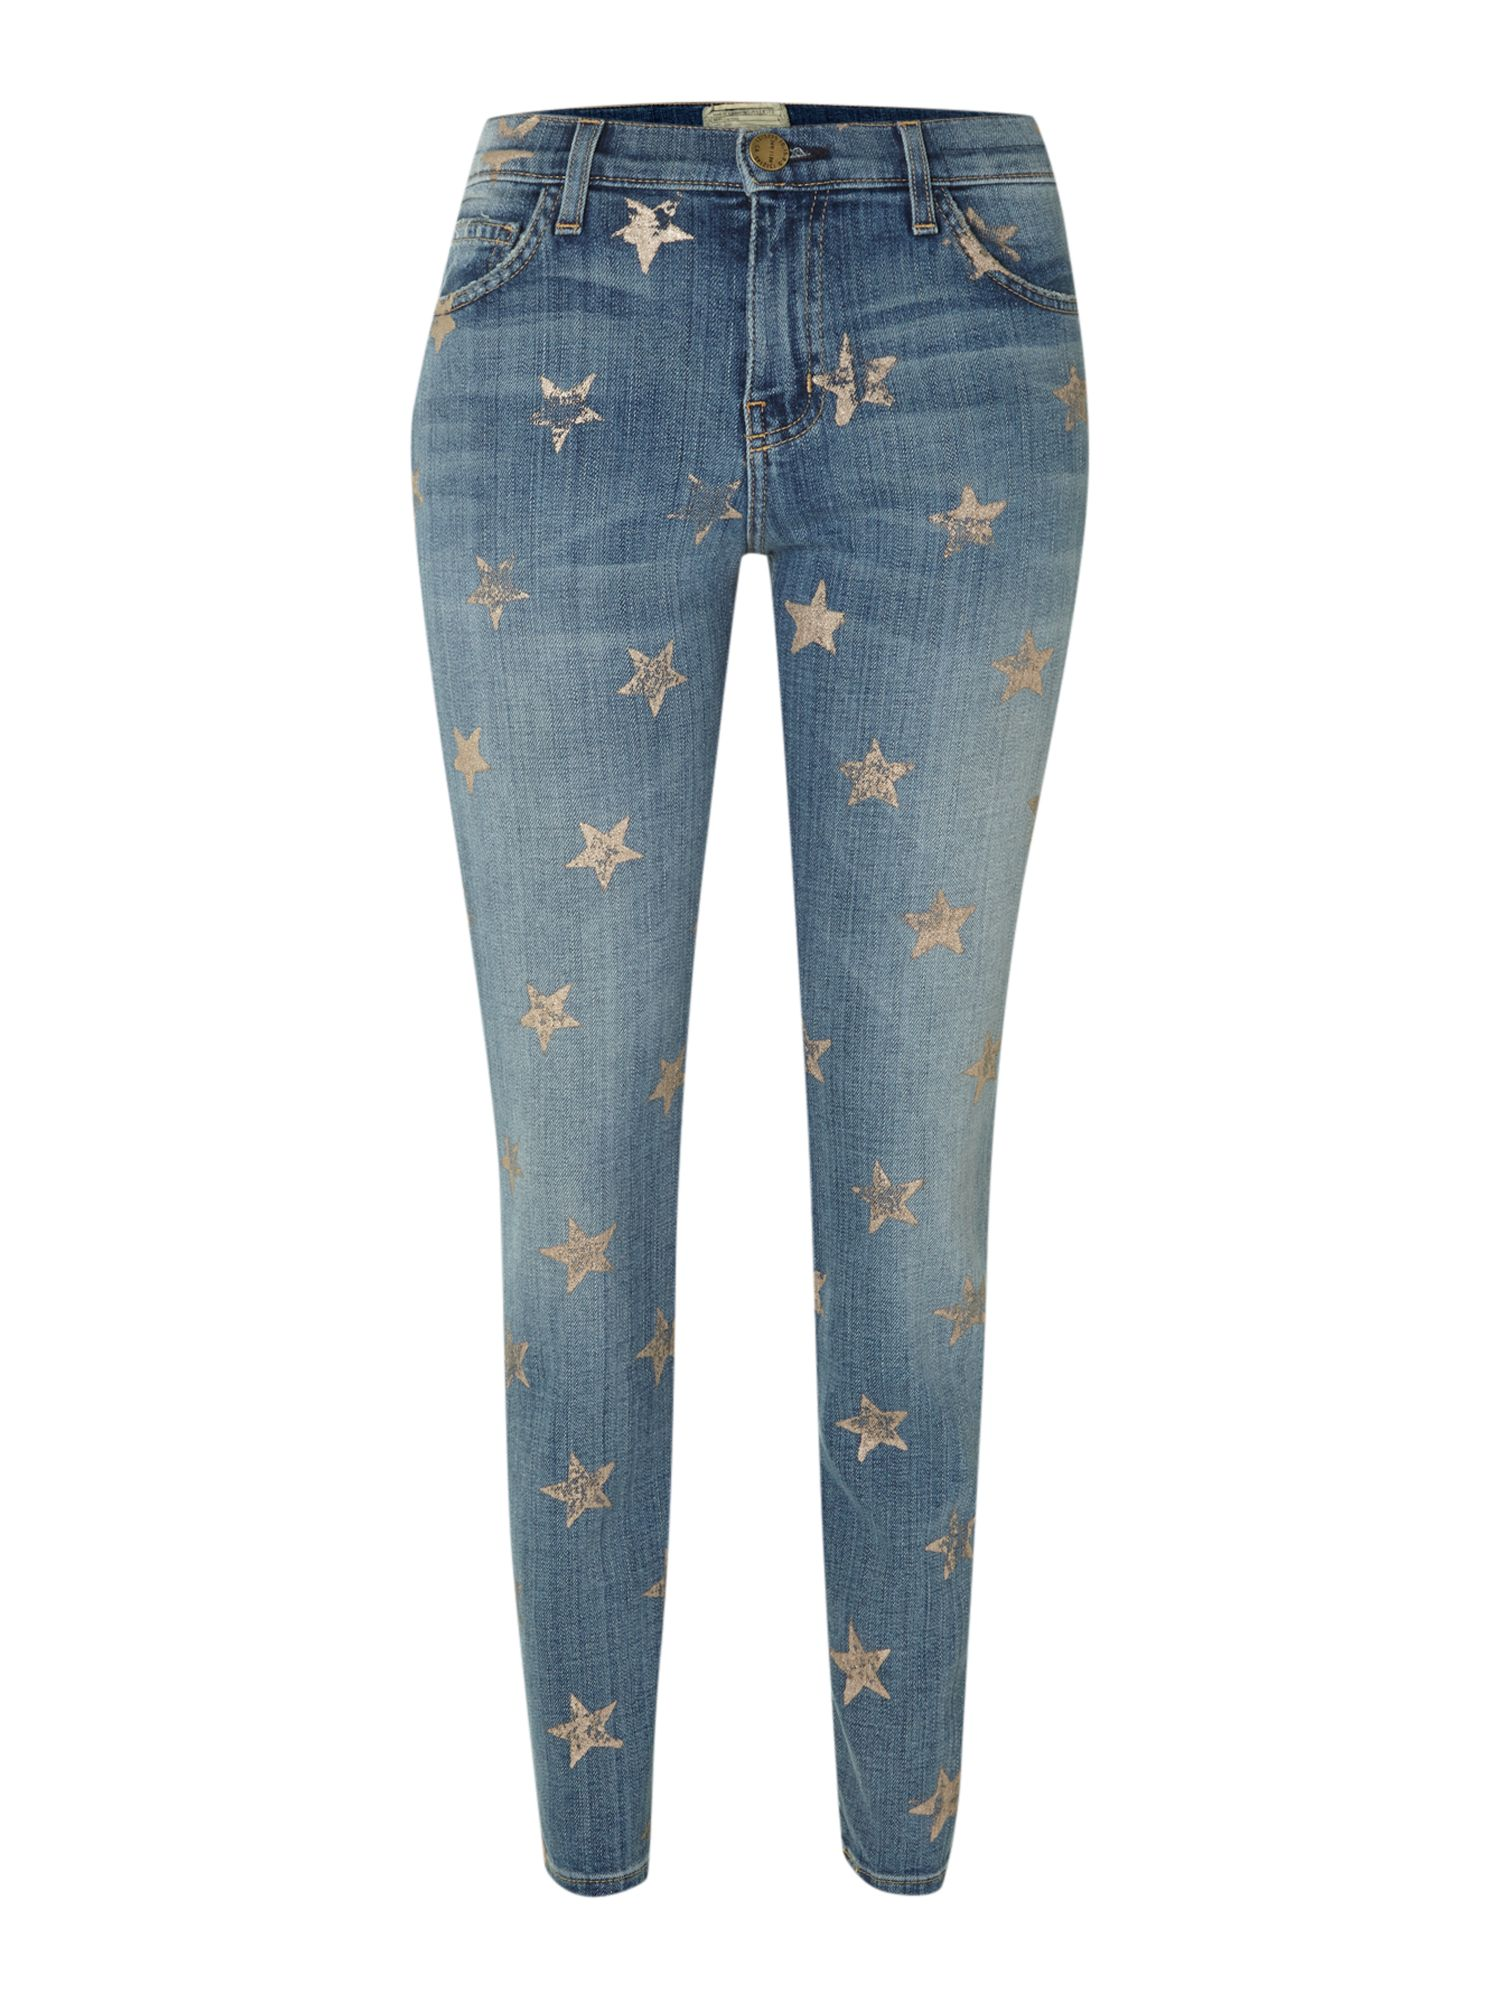 The Stiletto Skinny star jeans in Super Loved